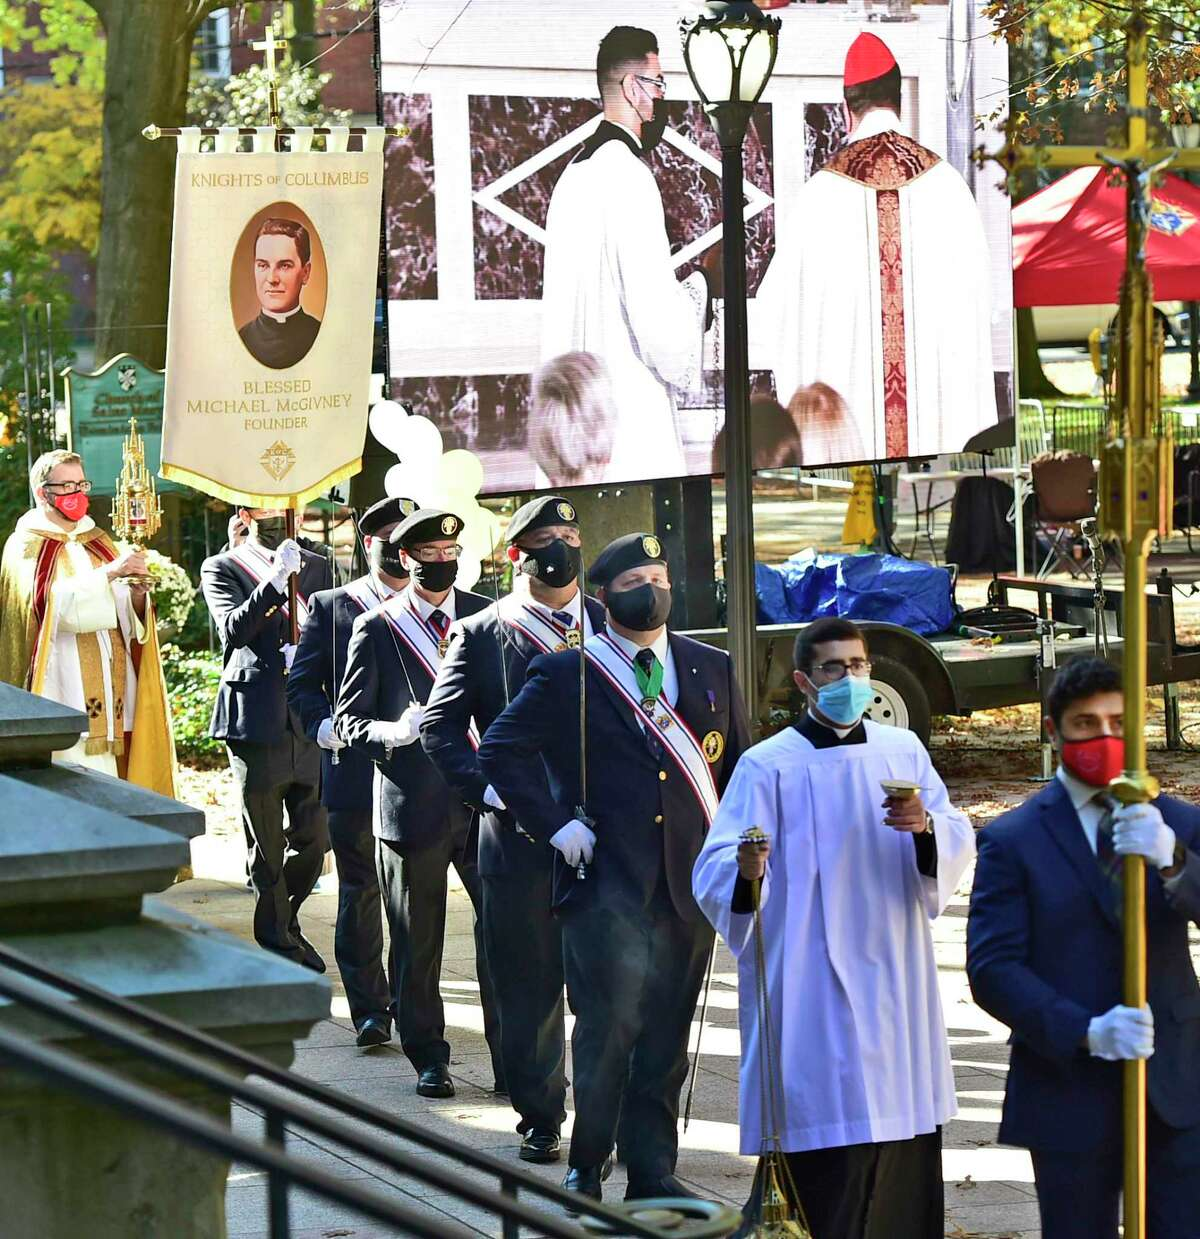 New Haven, Connecticut - Friday, October 30, 2020: A procession with a portion of an encased bone of Rev. Michael J. McGivney, founder of the Knights of Columbus at St. Mary's Church in New Haven, far left in photo, during a Beatification Mass for McGivney, that is video streamed Saturday from the Cathedral of St. Joseph in Hartford around the world and also televised at St. Mary's Church in New Haven as the Catholic Church Saturday declared Father McGivney,